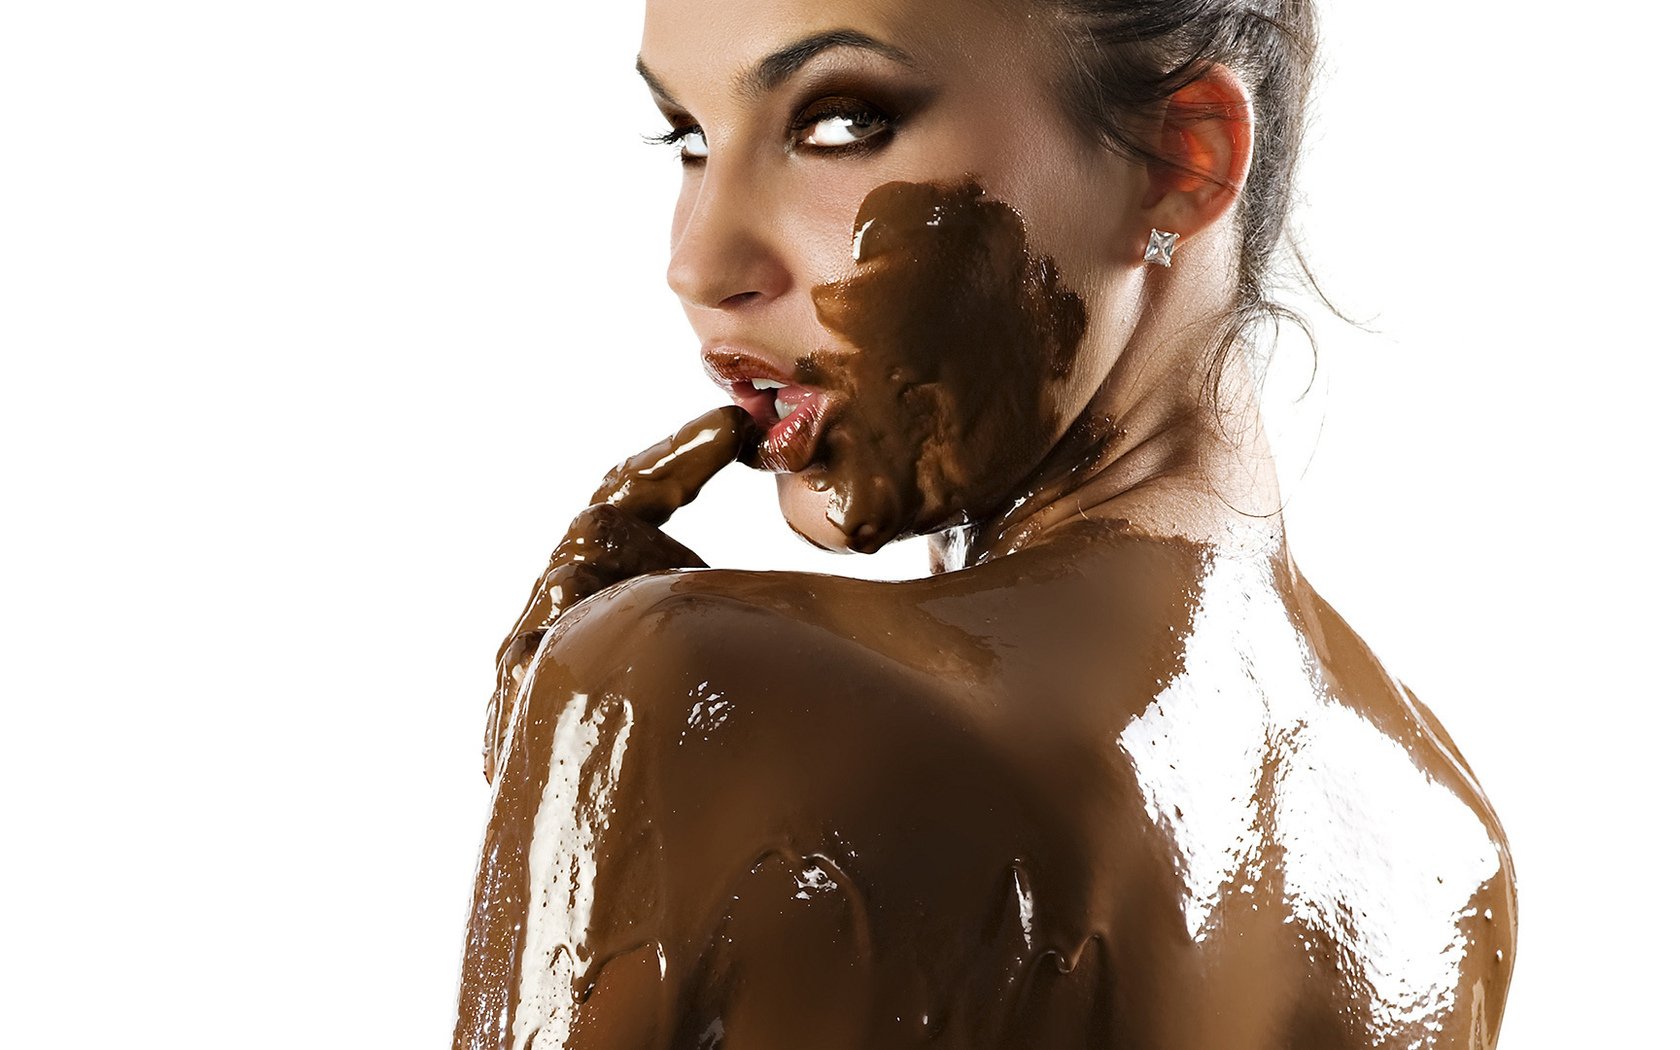 naked-boobs-with-chocolate-images